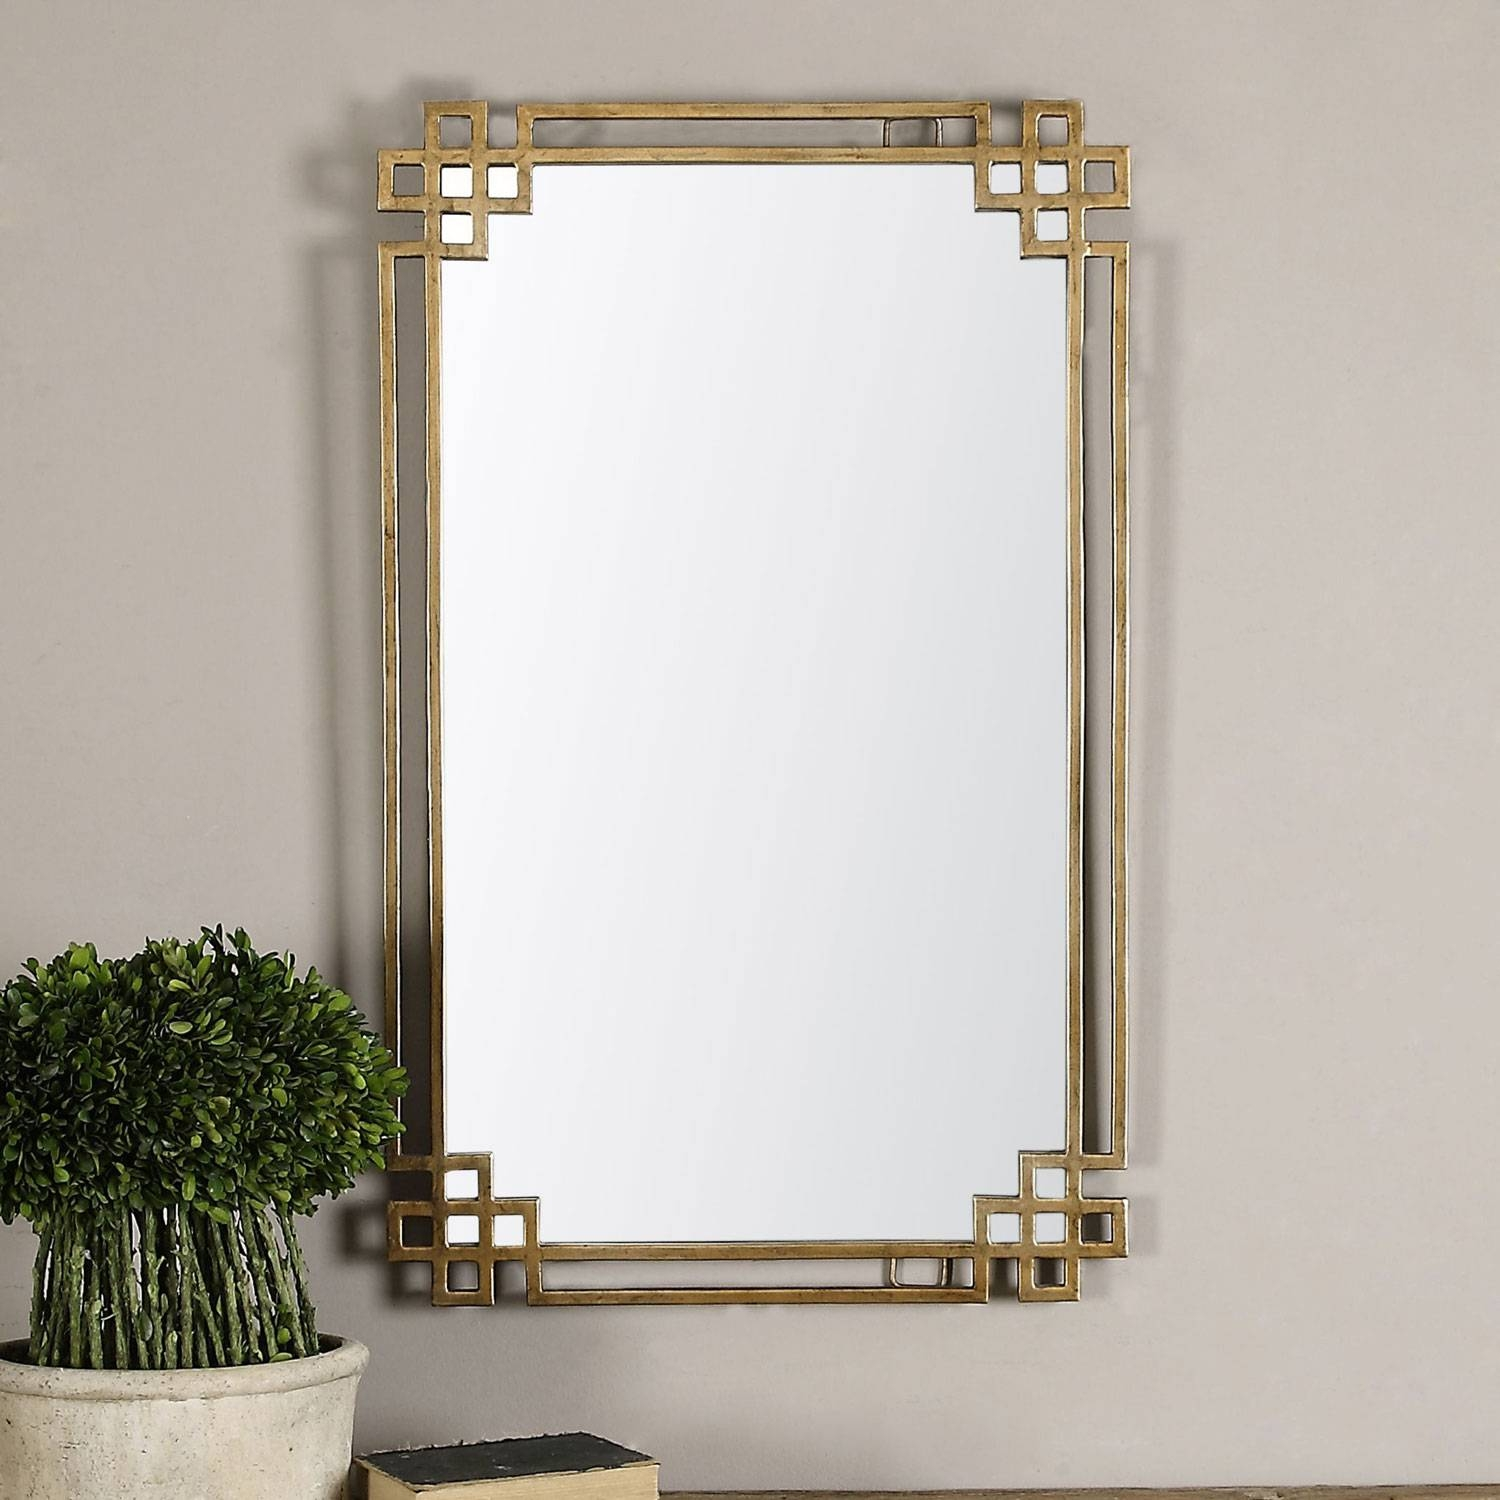 Devoll Antique Gold Mirror Uttermost Wall Mirror Mirrors Home Decor throughout Antique Gold Mirrors (Image 12 of 25)